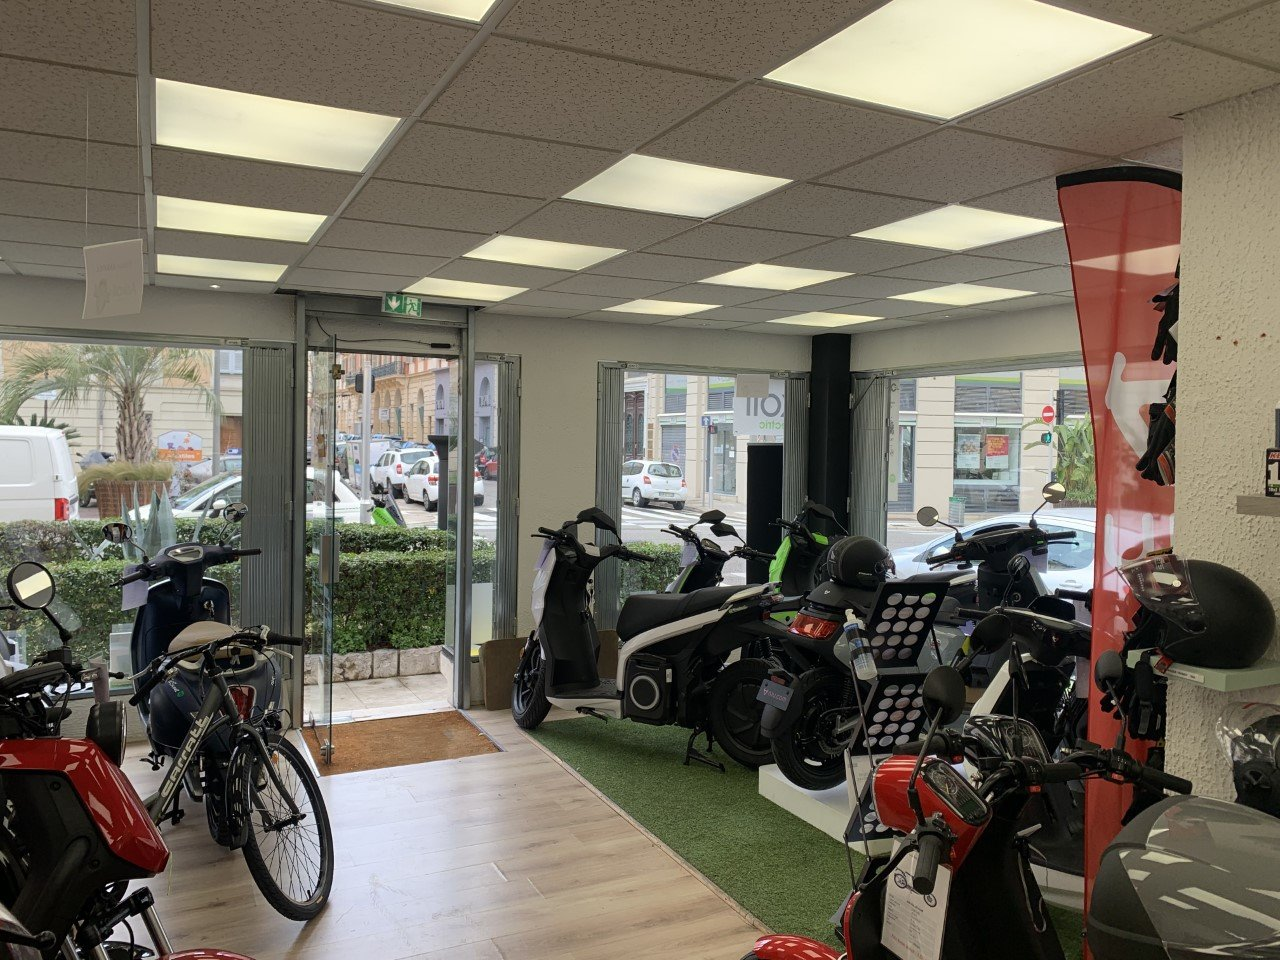 DAB - MAGASIN D'ANGLE 66 M² - NICE CENTRE VILLE